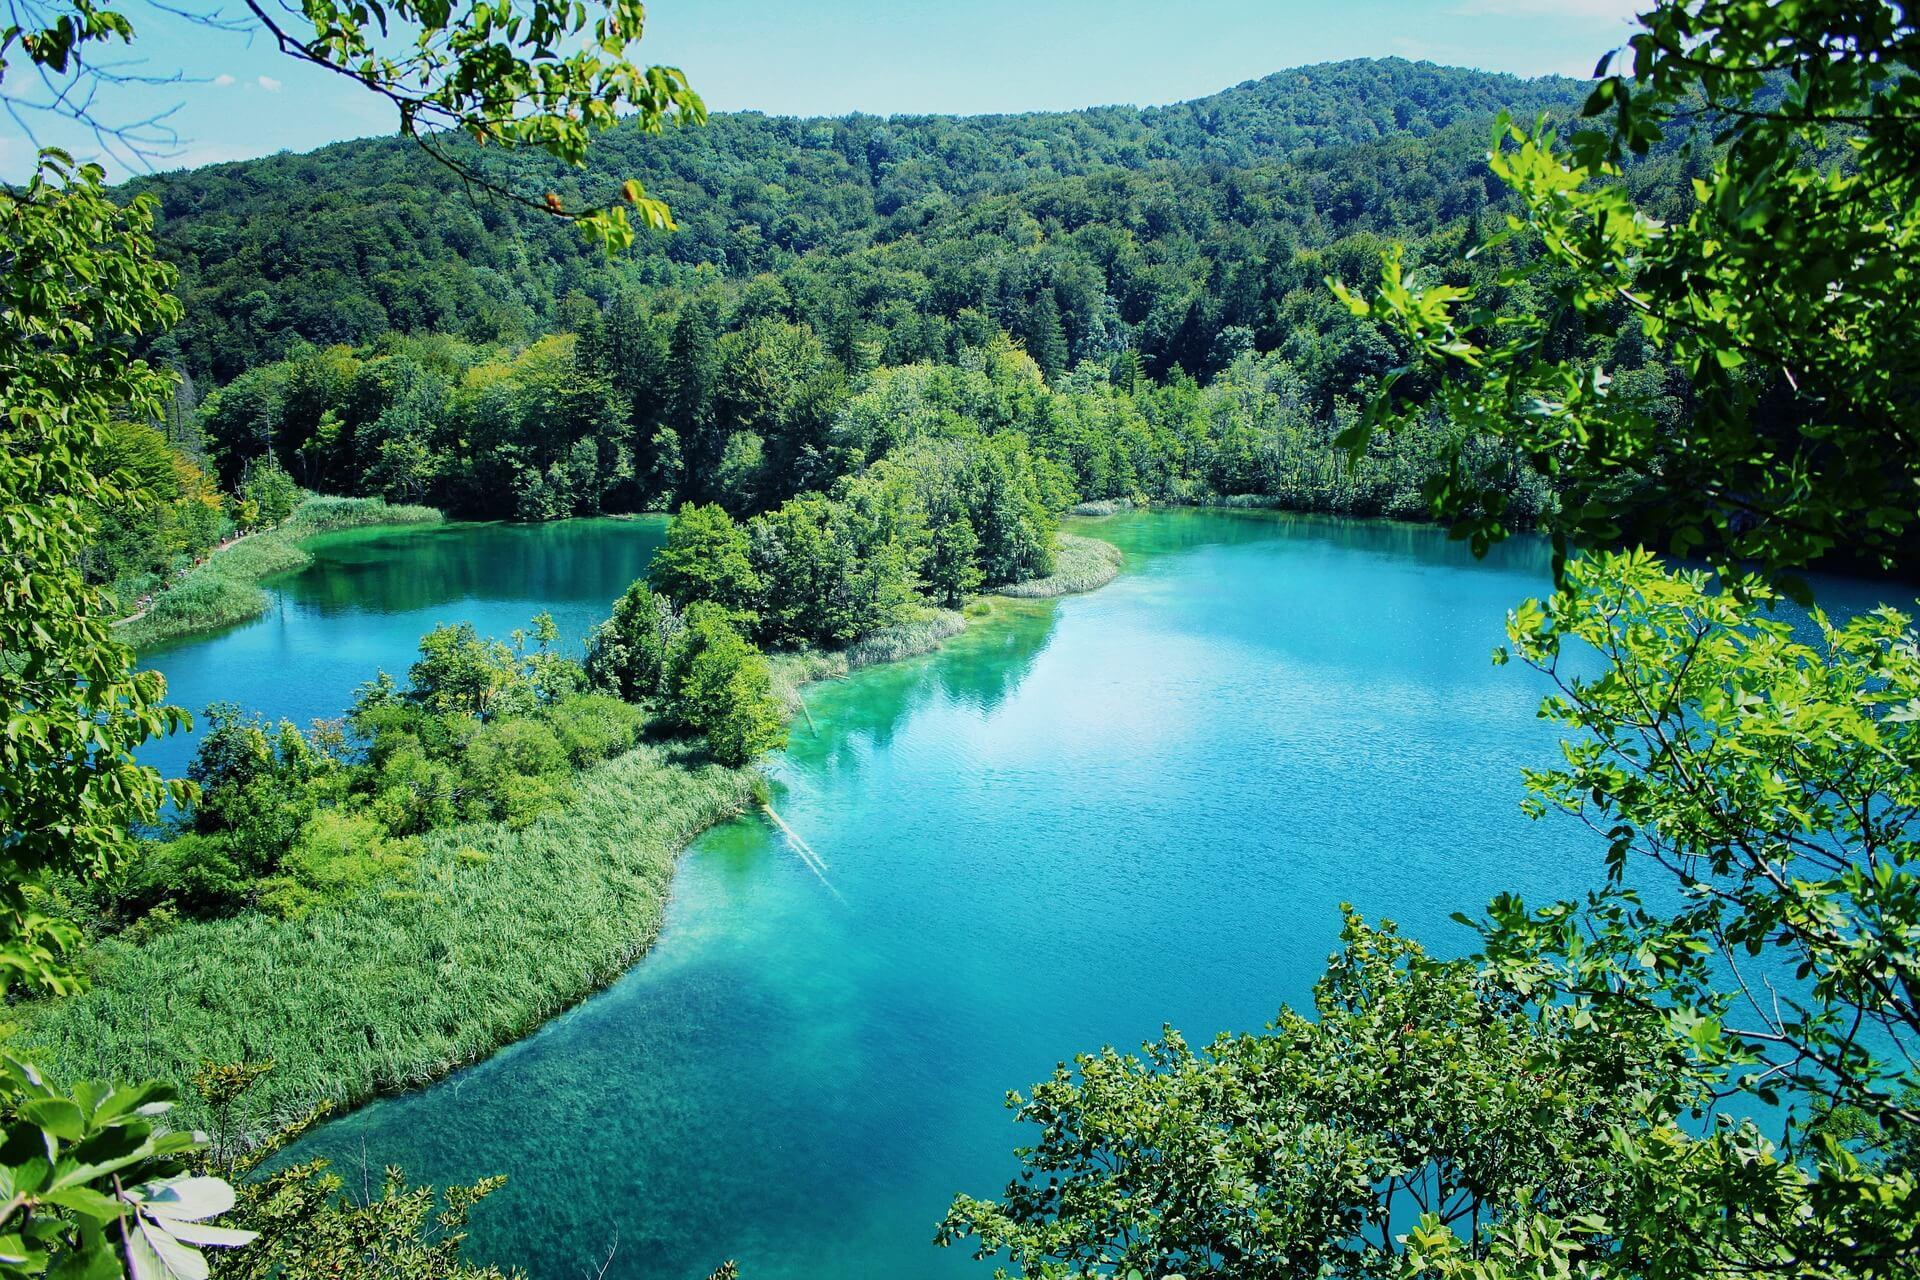 Aerial view of the Plitvice lakes